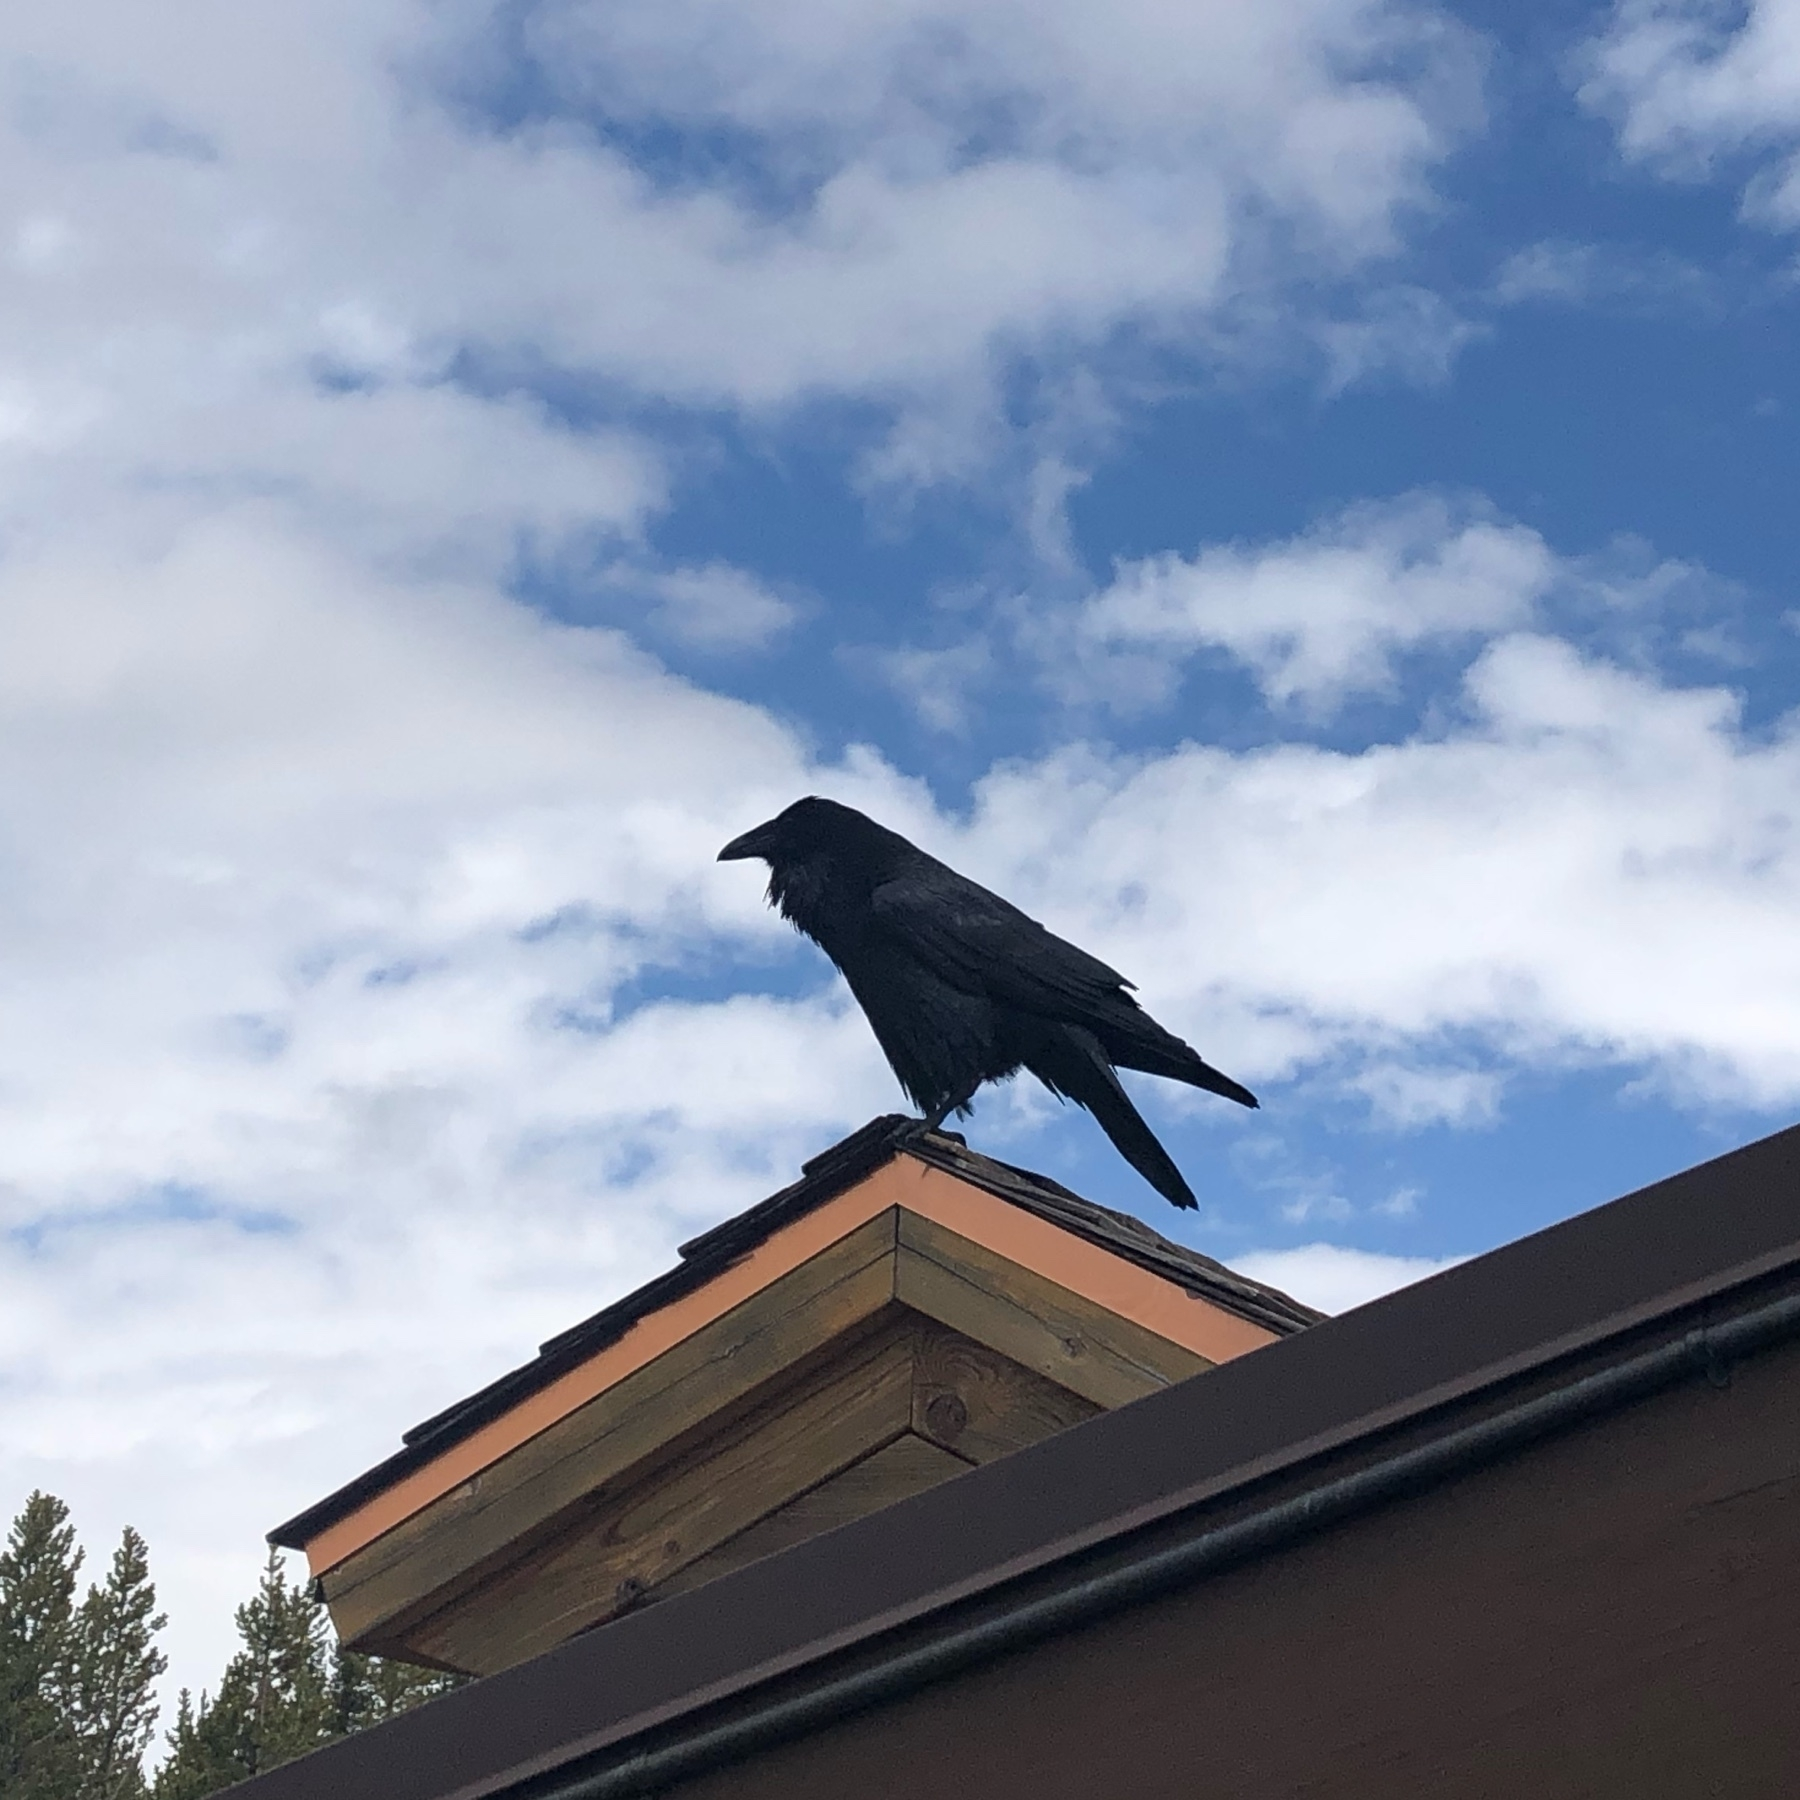 A raven sits on a roof edge